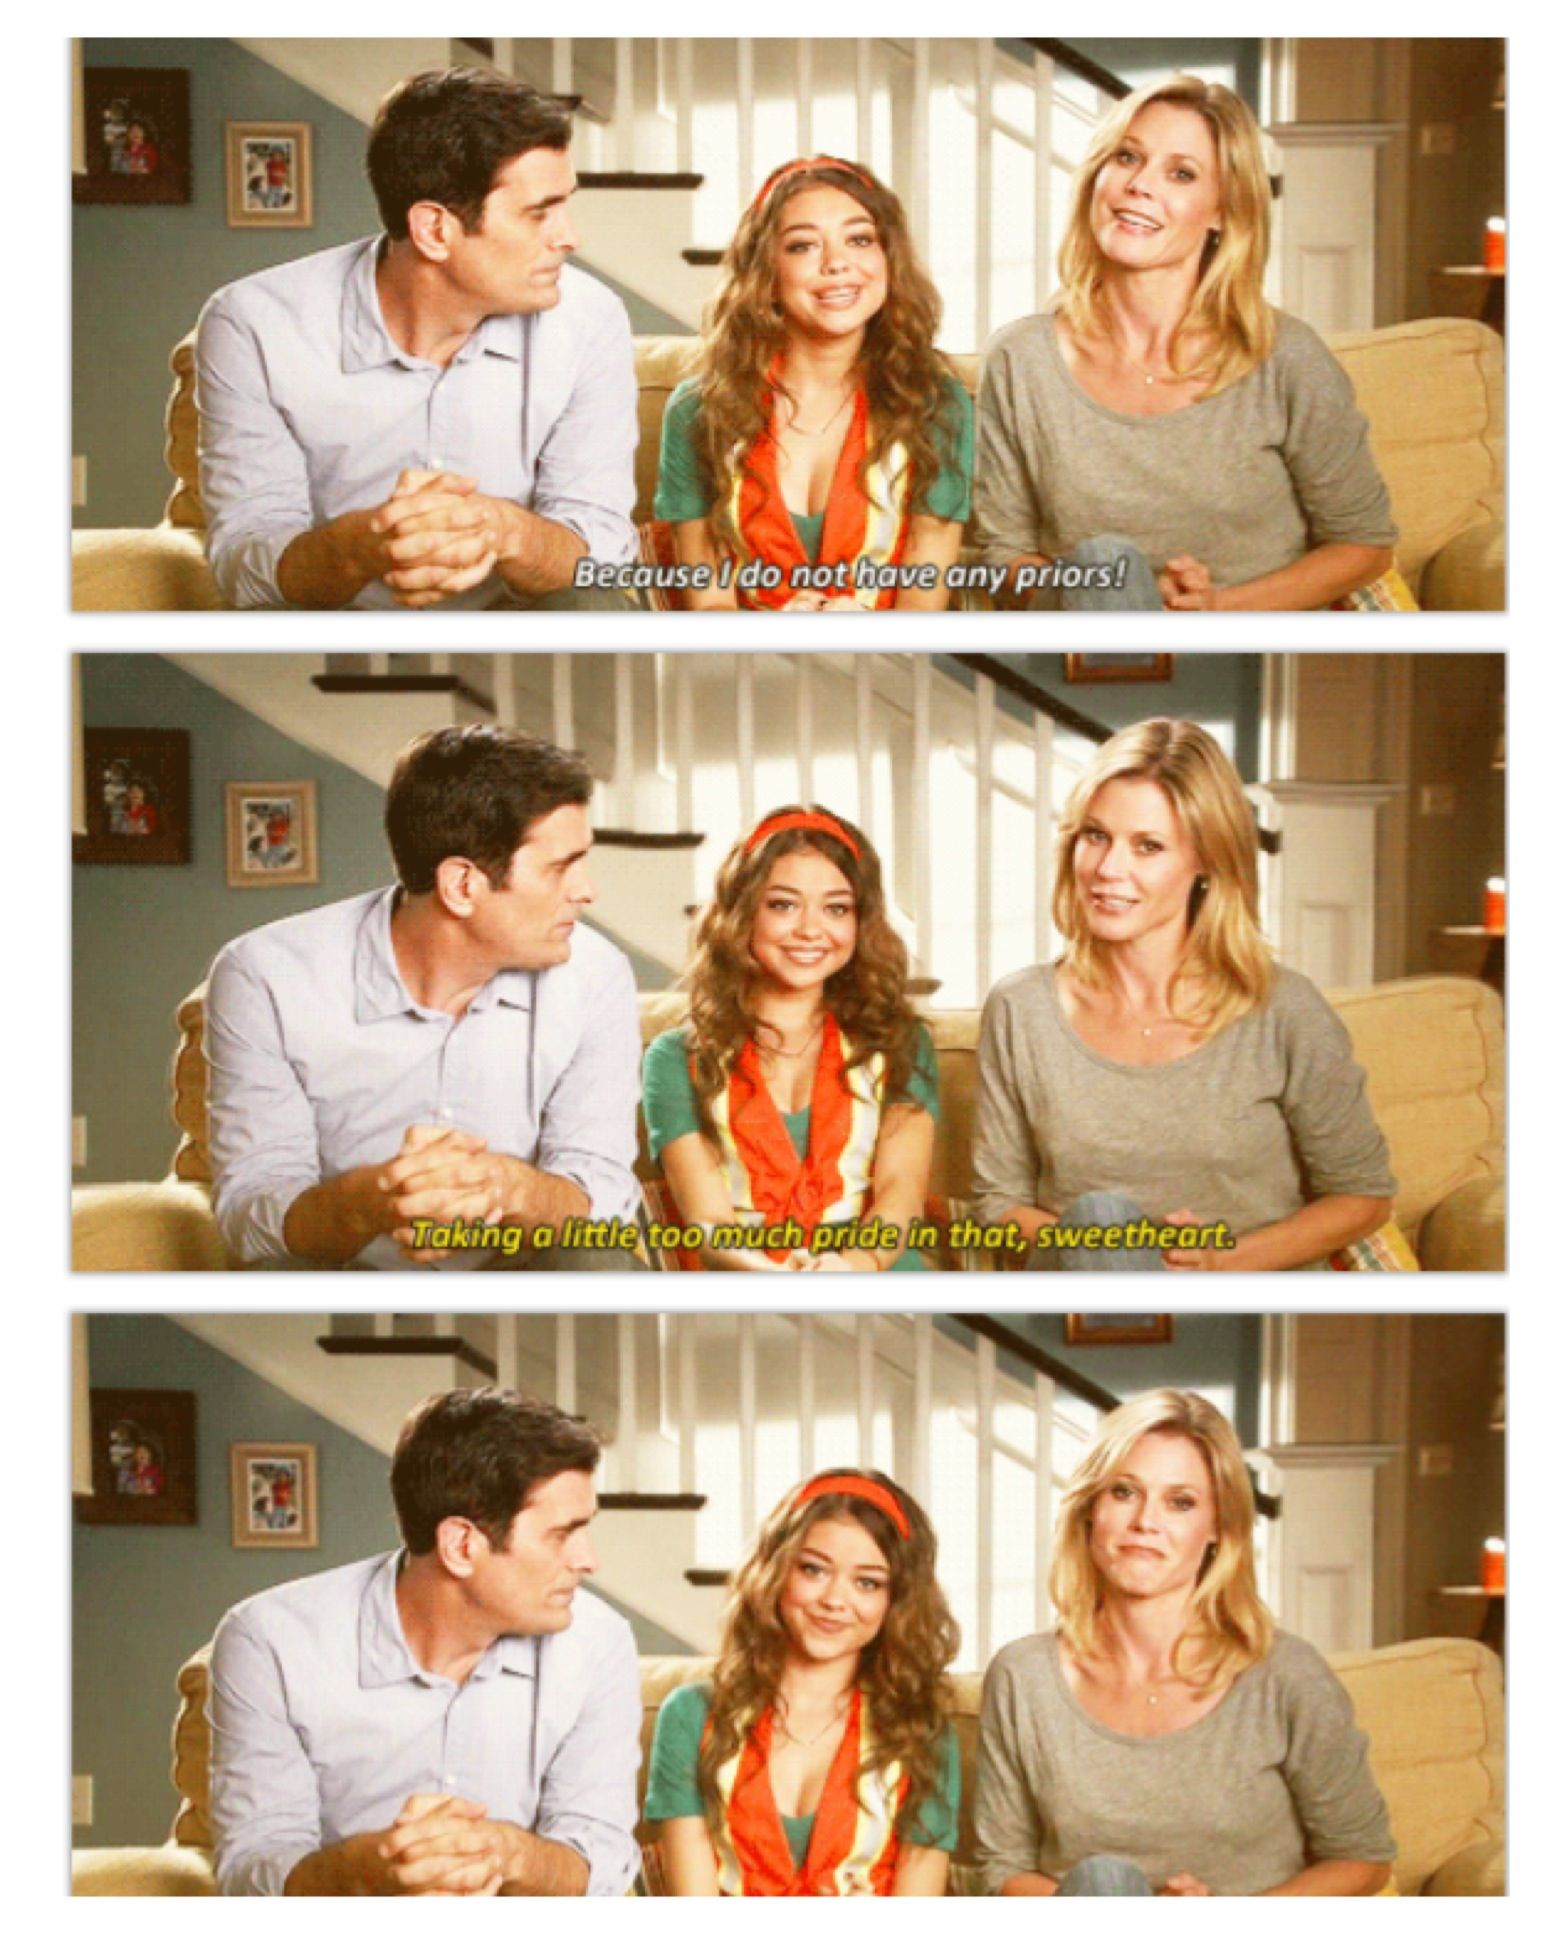 No Priors Modern Family Quotes Modern Family New Modern Family